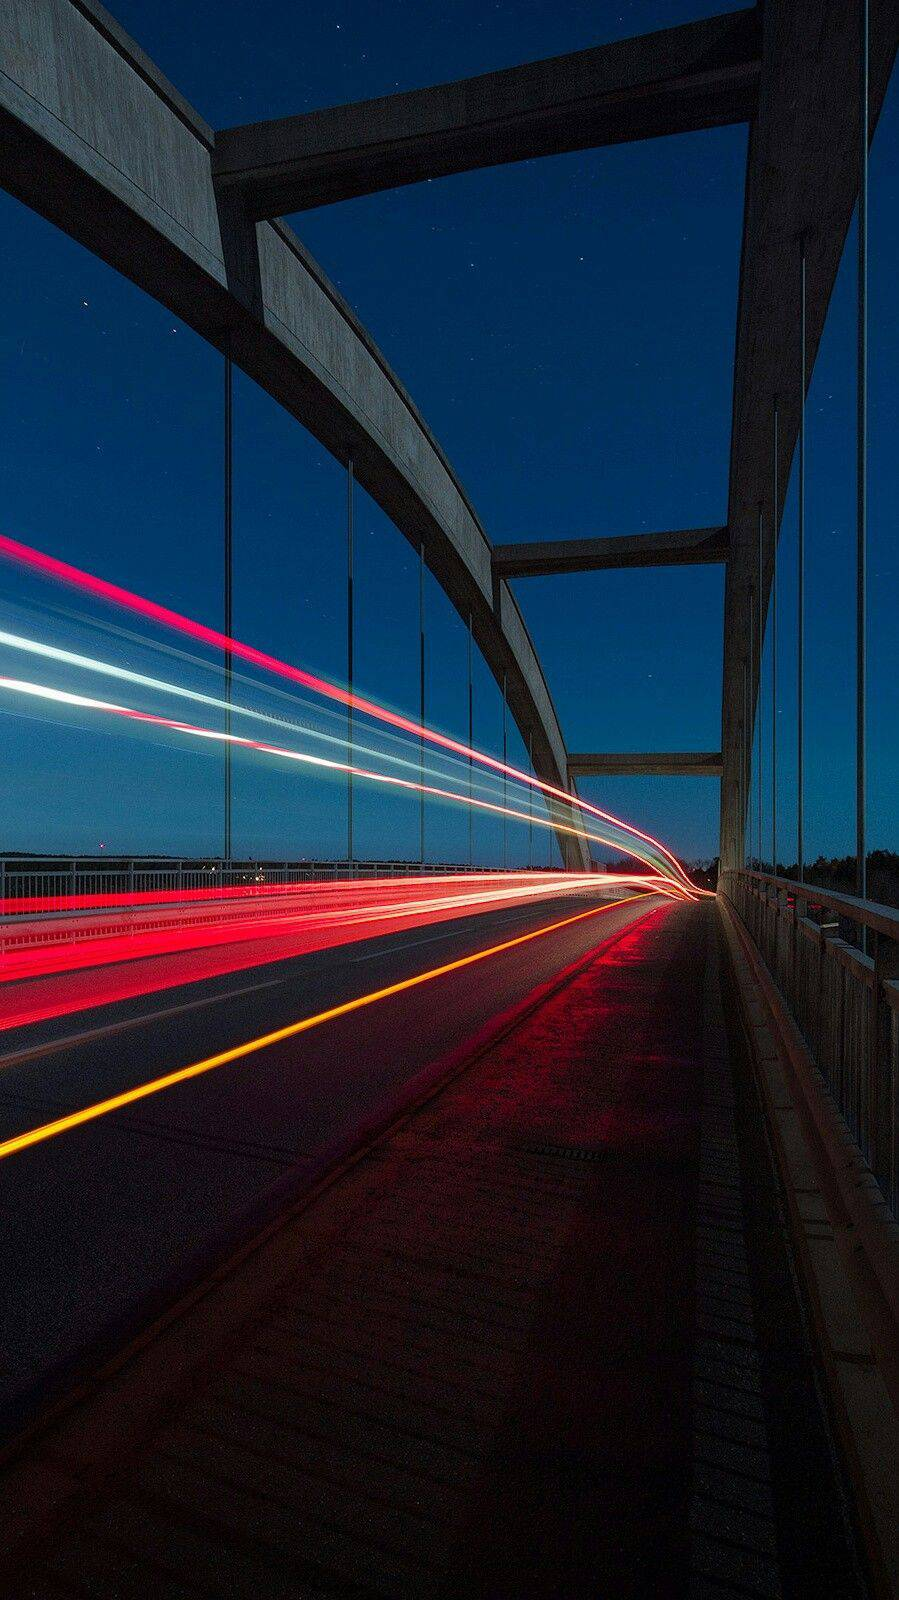 Vehicle Lights Long Exposure Bridge iPhone Wallpaper